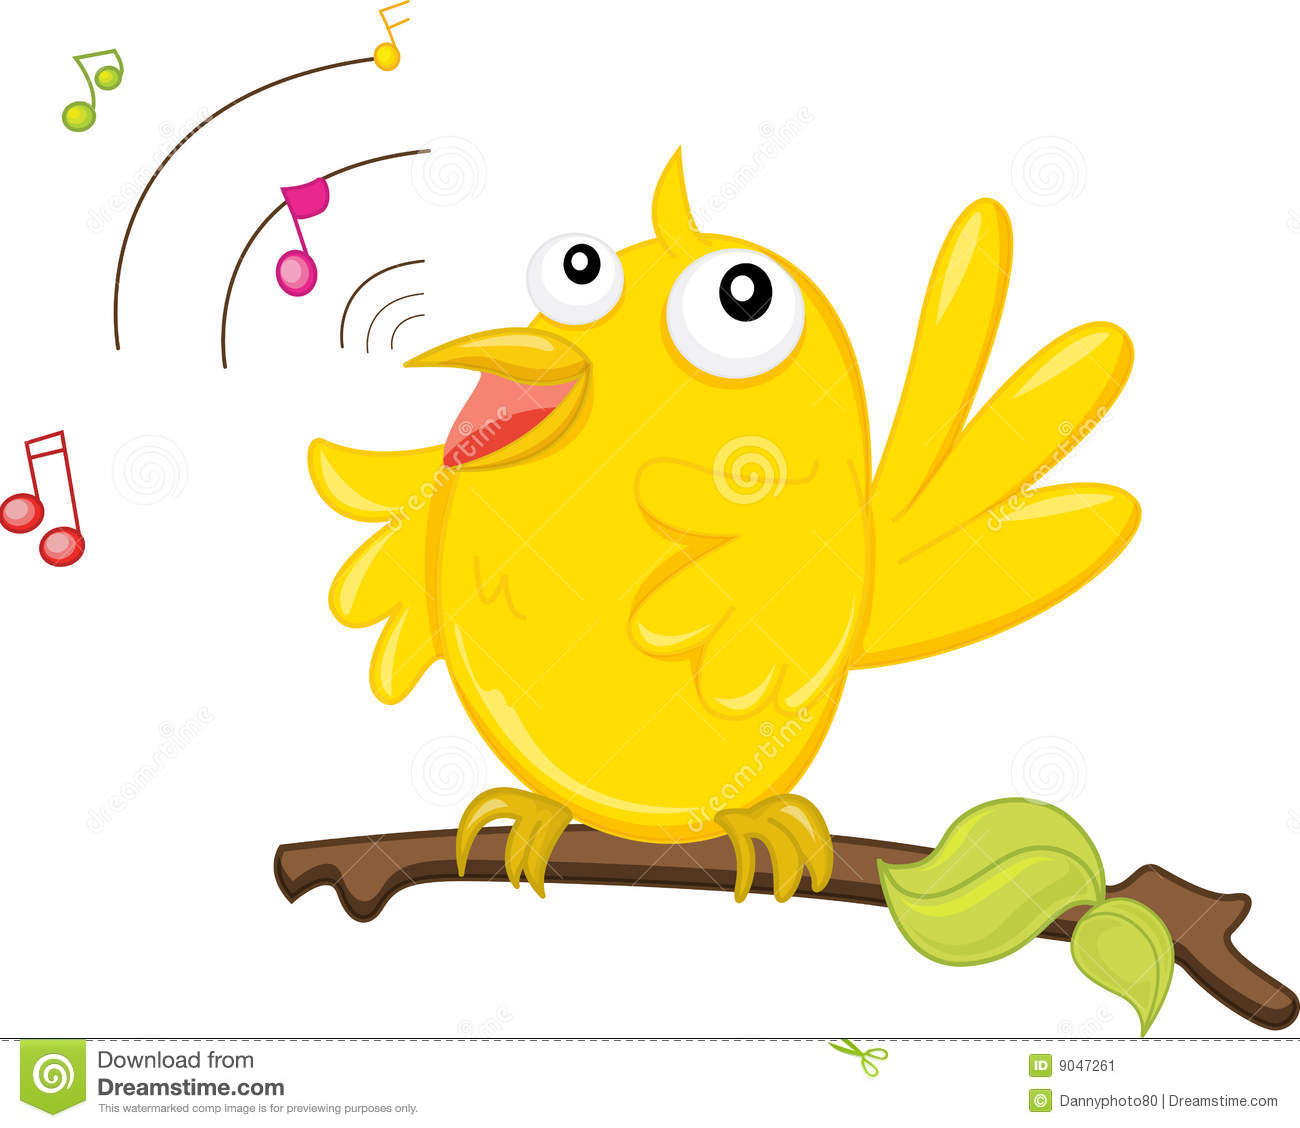 Singing bird clipart 20 free Cliparts | Download images on ... (1300 x 1128 Pixel)